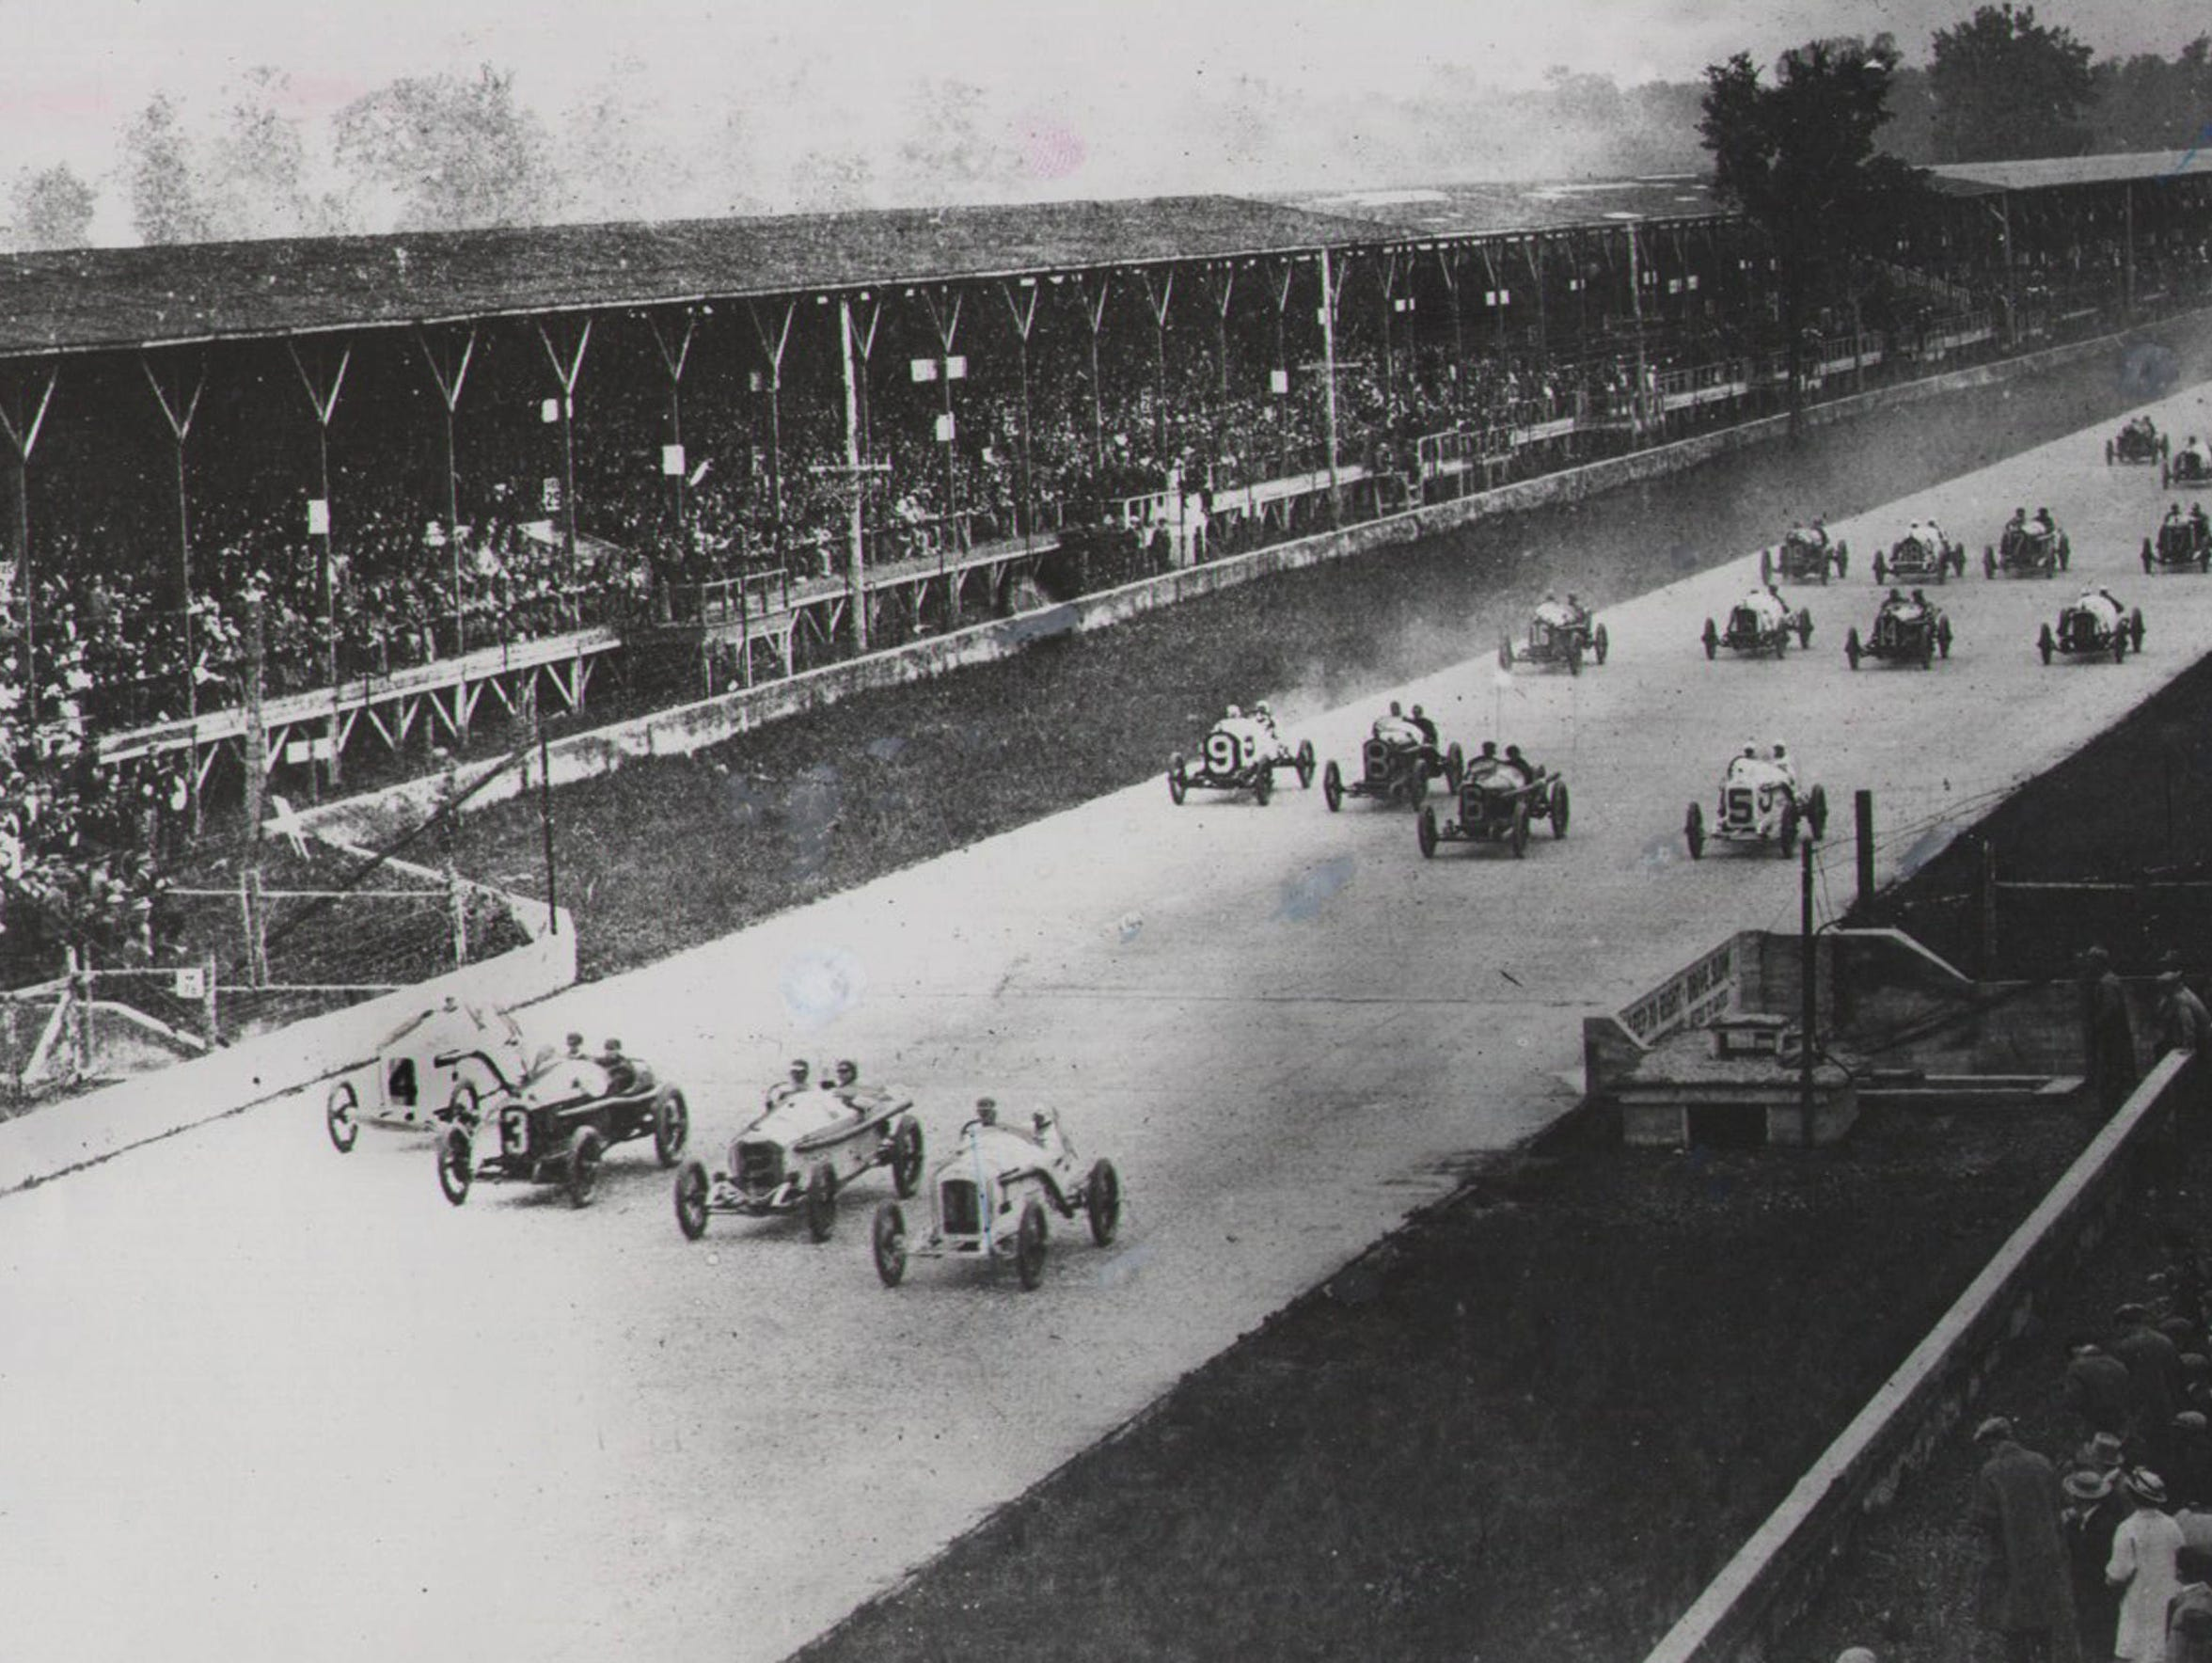 The first lap of the 1915 Indianapolis 500.